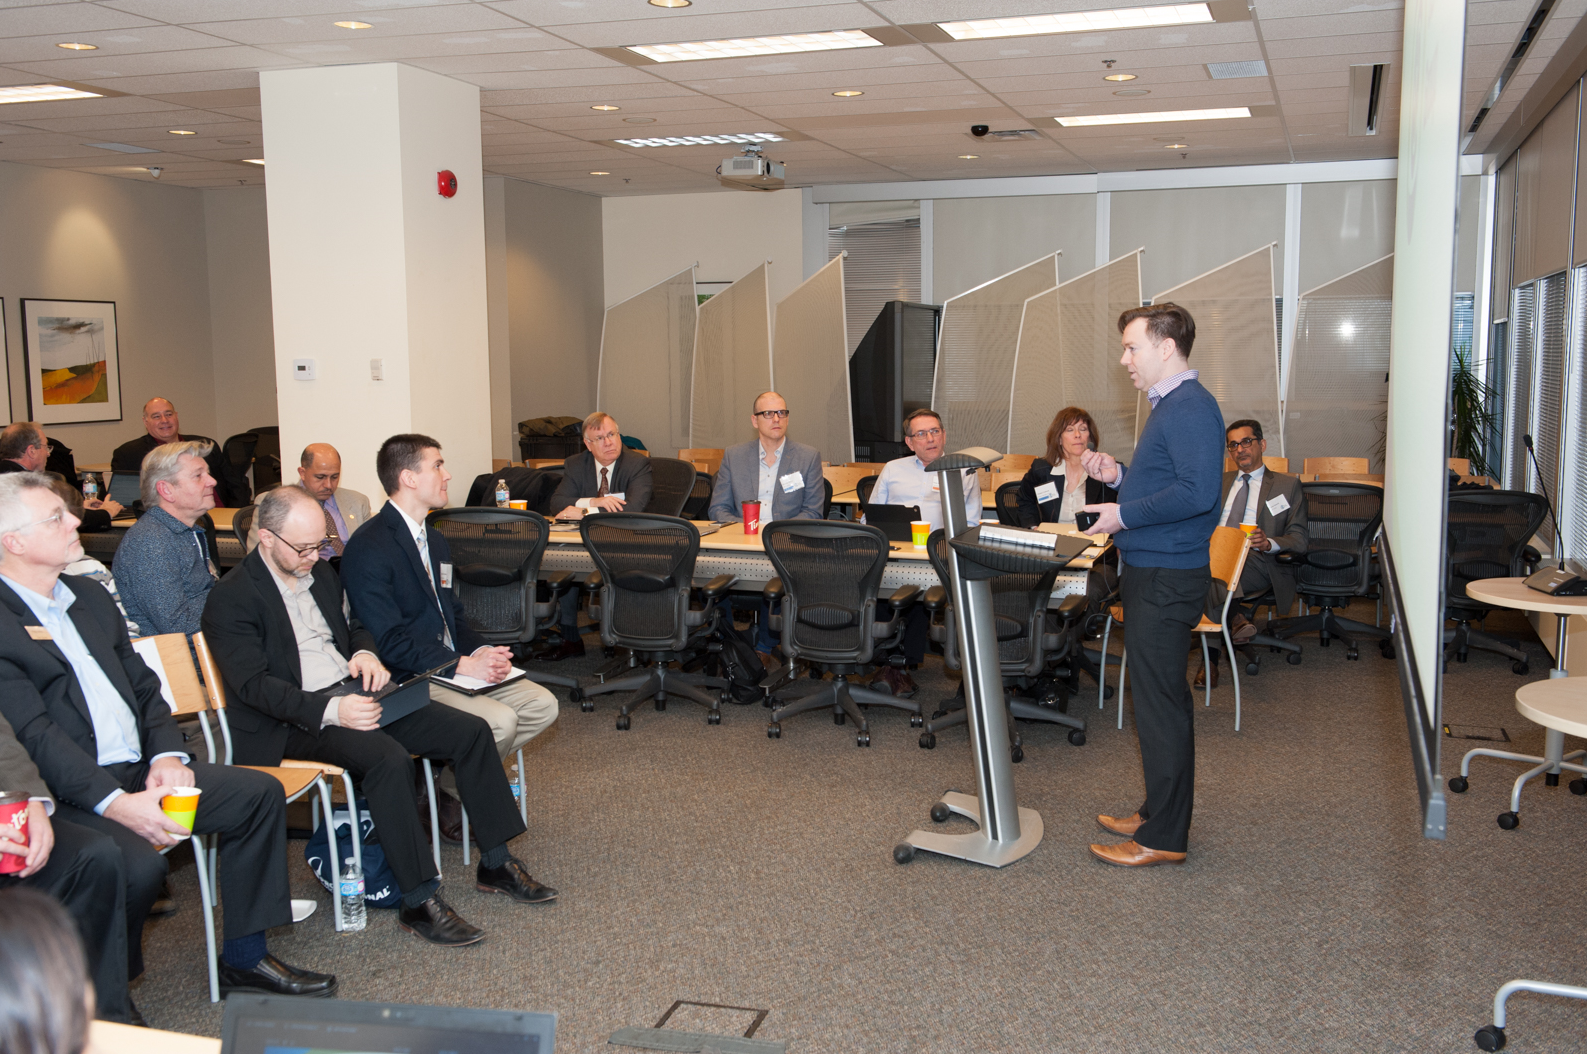 Taken on January 28, 2016 at CSA Group Headquarters where the Electric Vehicle Supply Equipment (EVSE) Infrastructure Requirements in the National Building Code of Canada (NBCC) and the Canadian Electrical Code (CE Code) workshop was held. The objective of this workshop was detail existing Code and Regulatory barriers impeding the deployment of EVSE technology in Canada and, provide recommendations to overcoming the identified barriers.